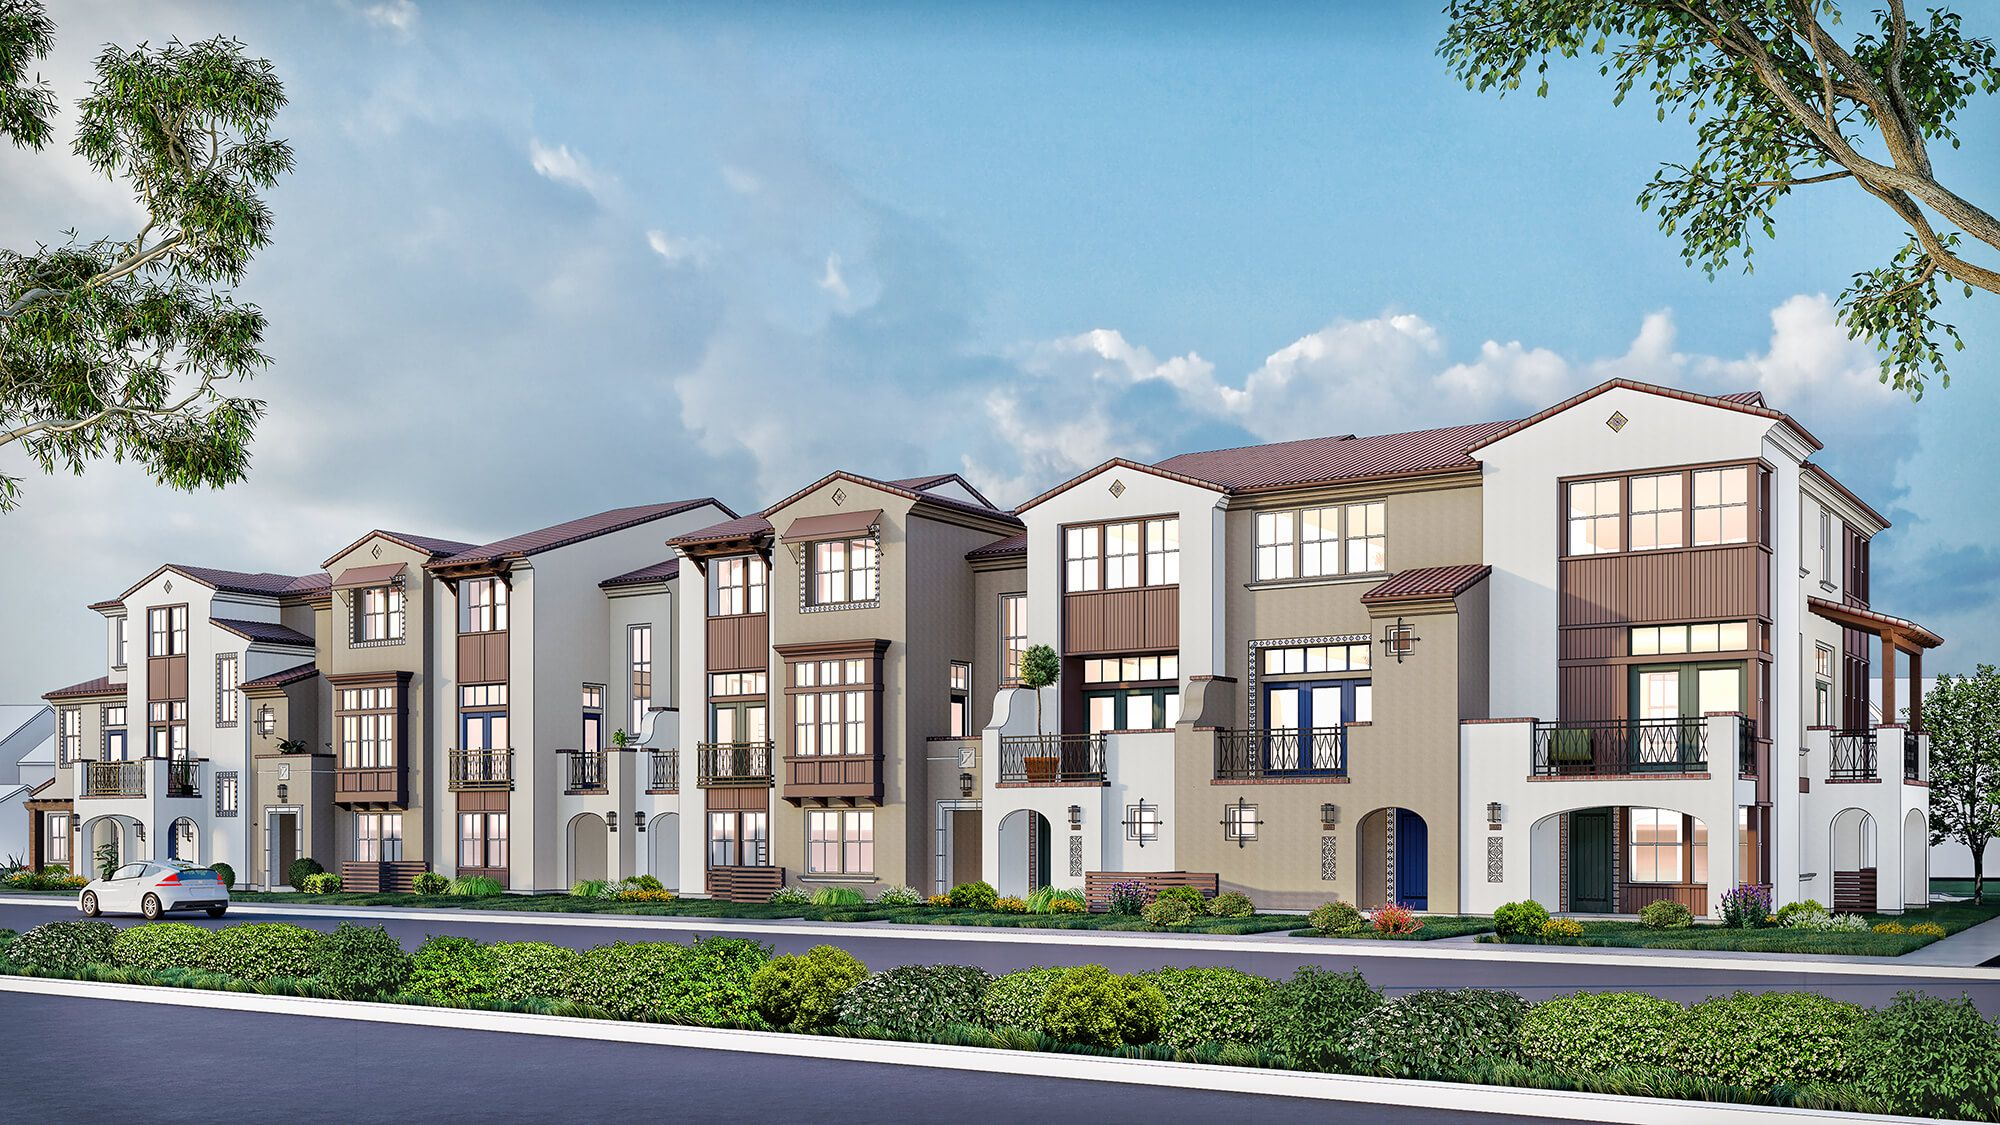 'Cantera' by Dividend Homes in San Jose